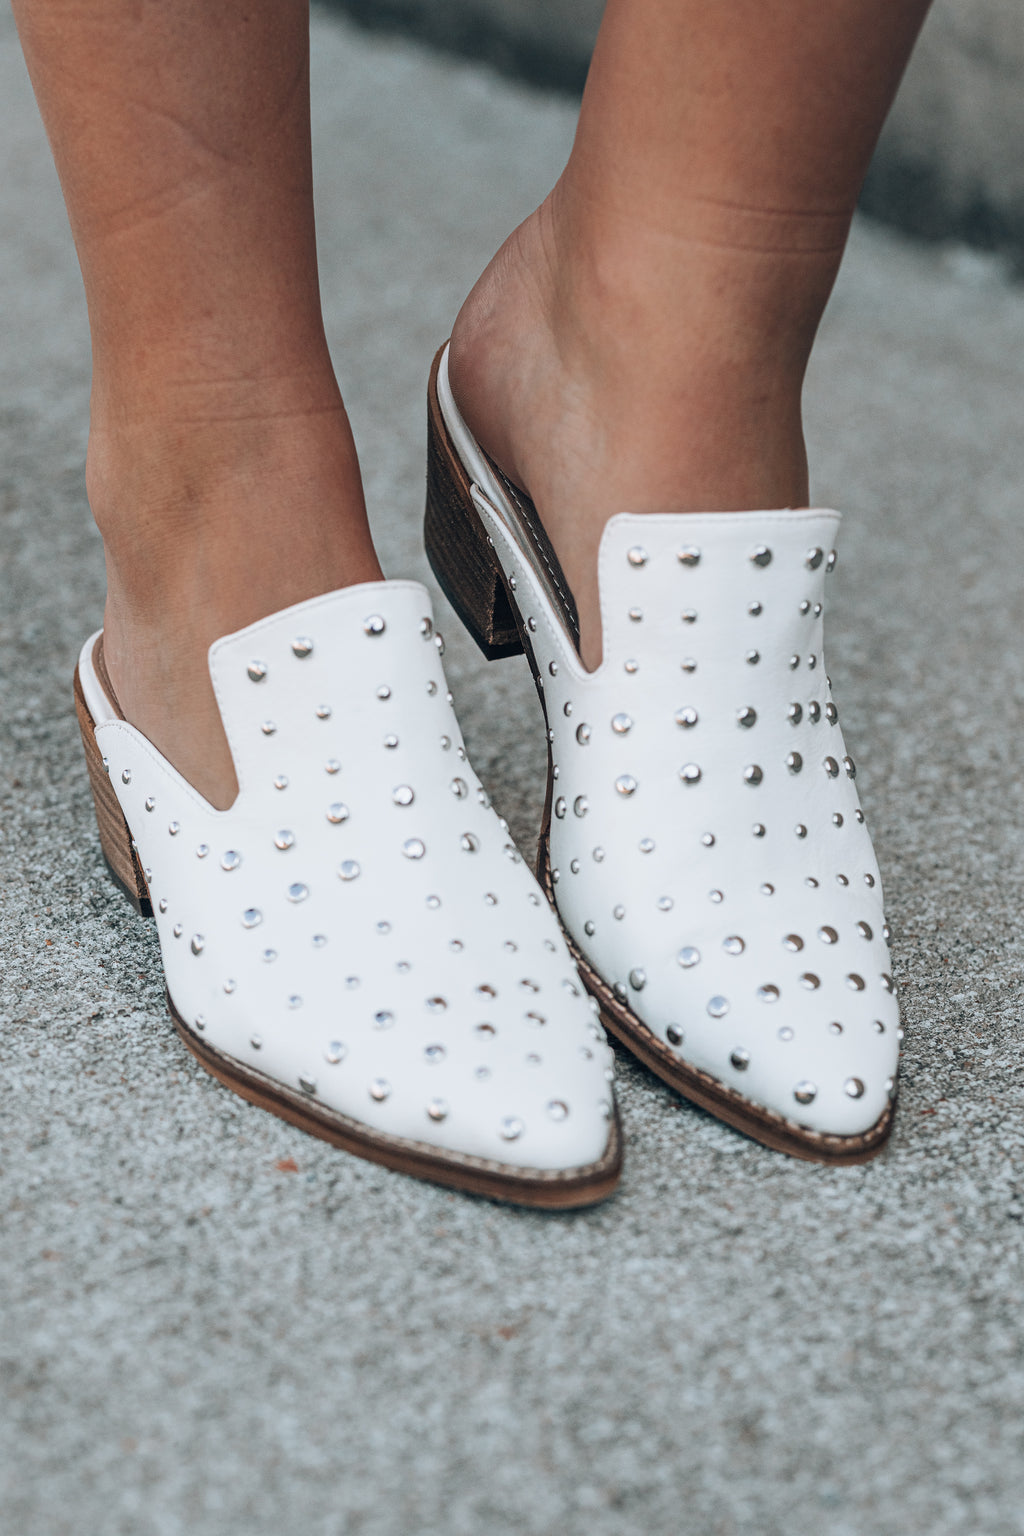 Zeppelin Studded Mules - FINAL SALE